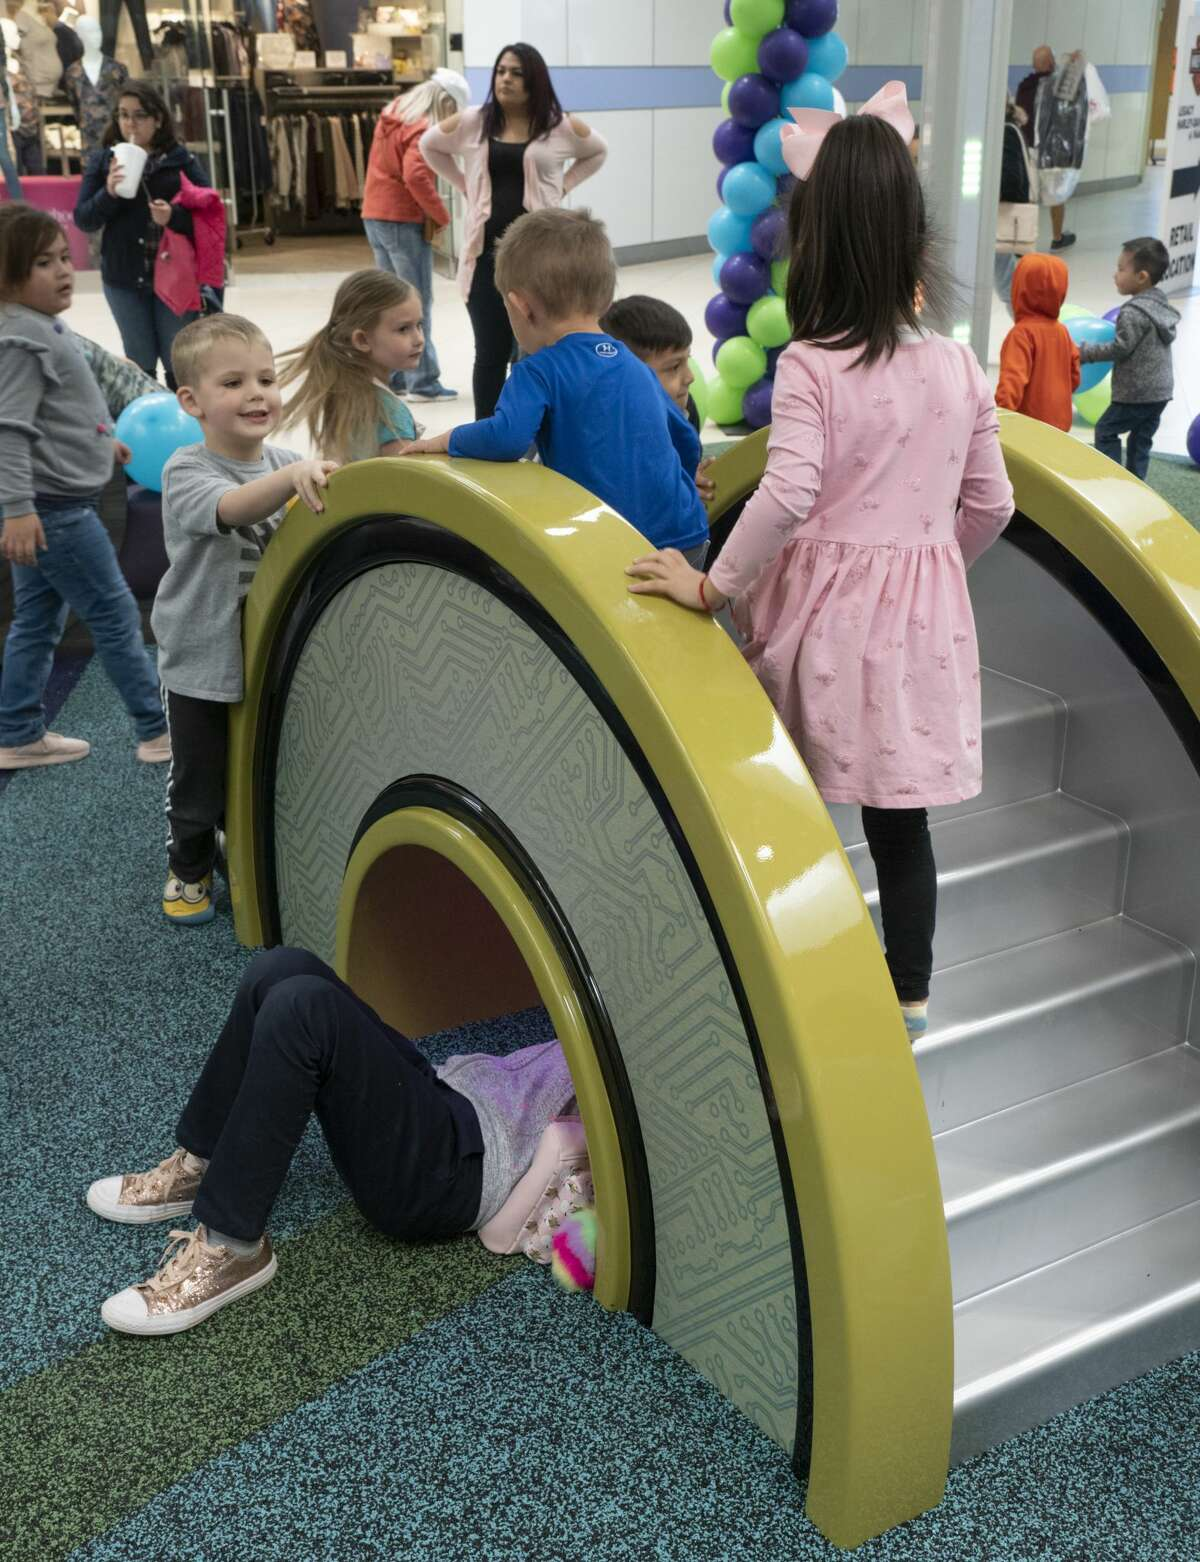 Children play on some of the climbing displays 02/23/2019 in the new play area in Midland Park Mall near JCPenny. Tim Fischer/Reporter-Telegram